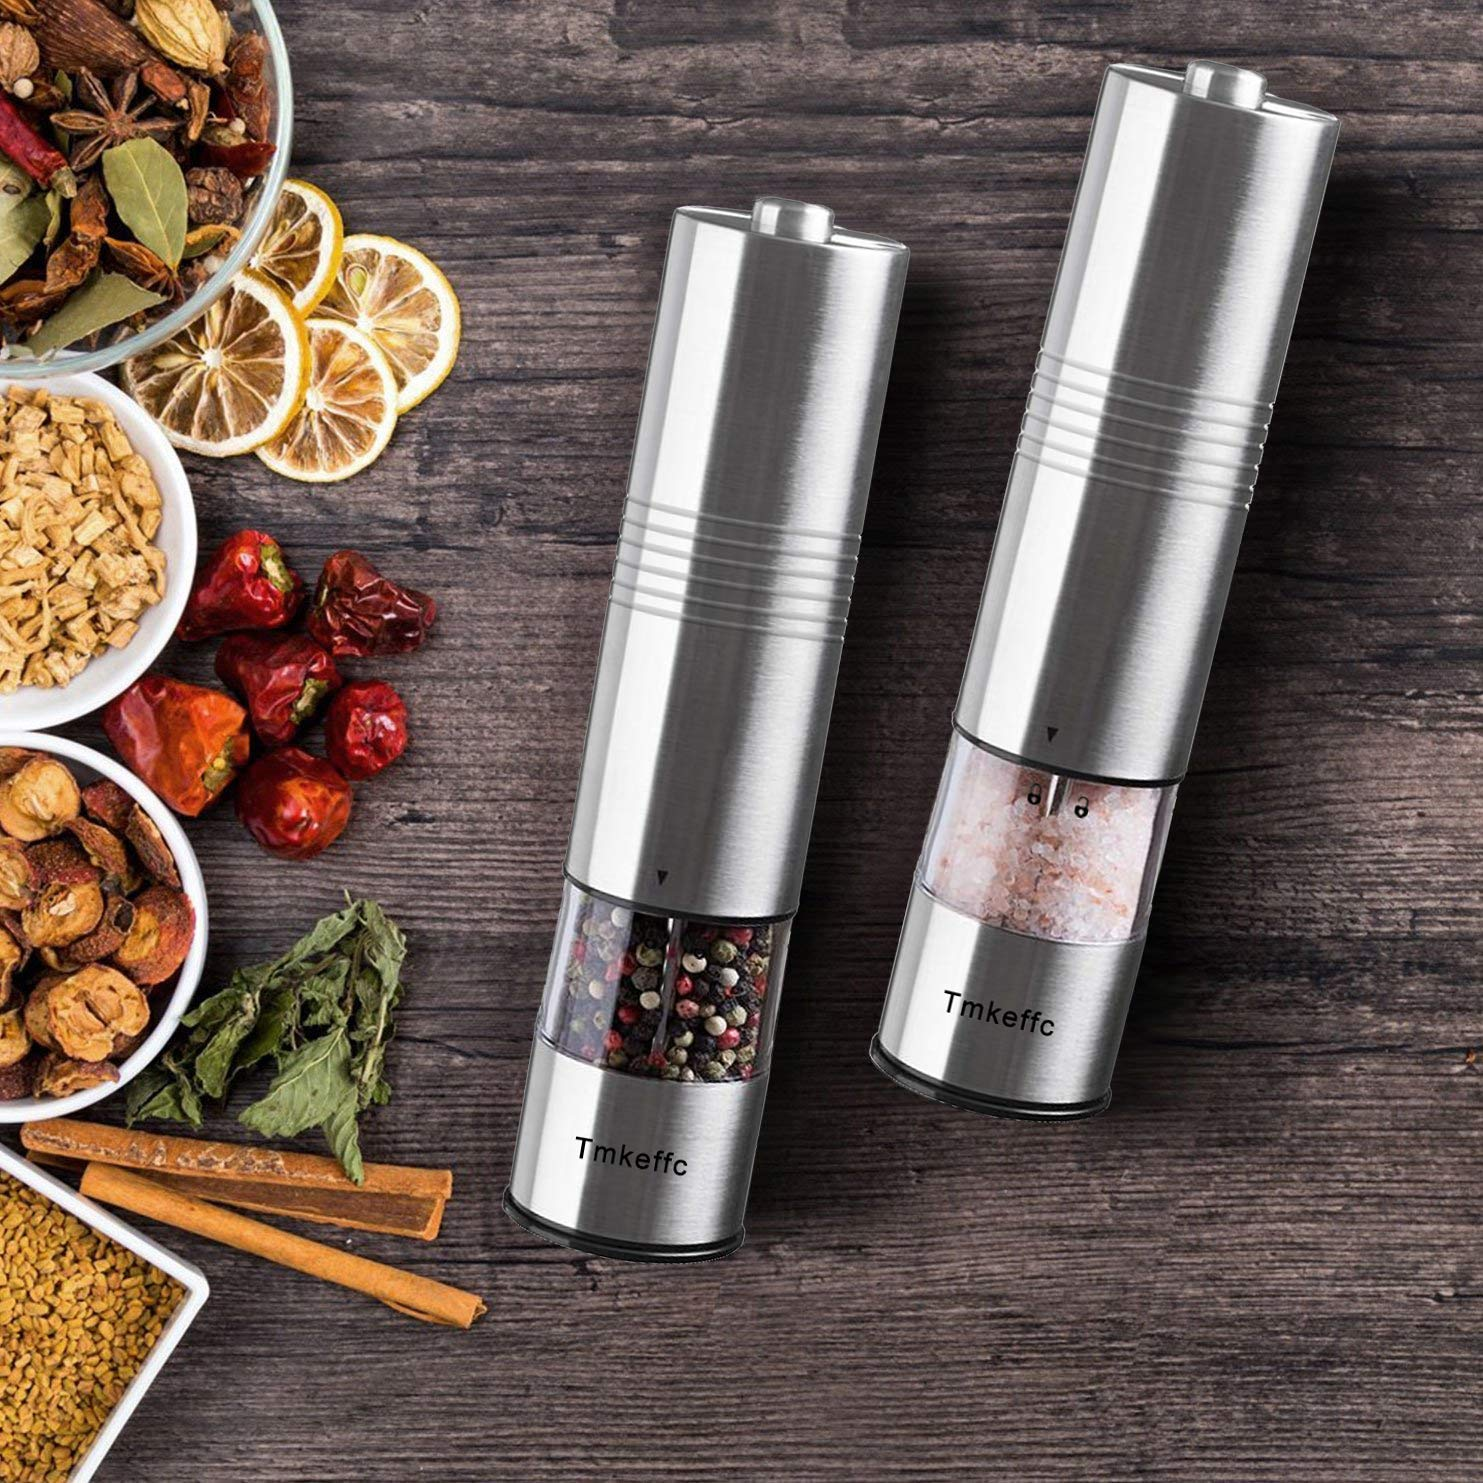 TMKEFFC Electric Salt and Pepper Grinder Set - Battery Operated Stainless Steel Mill with LED Light (Pack of 2 Mills) - Electronic Adjustable Shakers - Ceramic Grinders - Automatic One Handed Operation by TMKEFFC (Image #7)